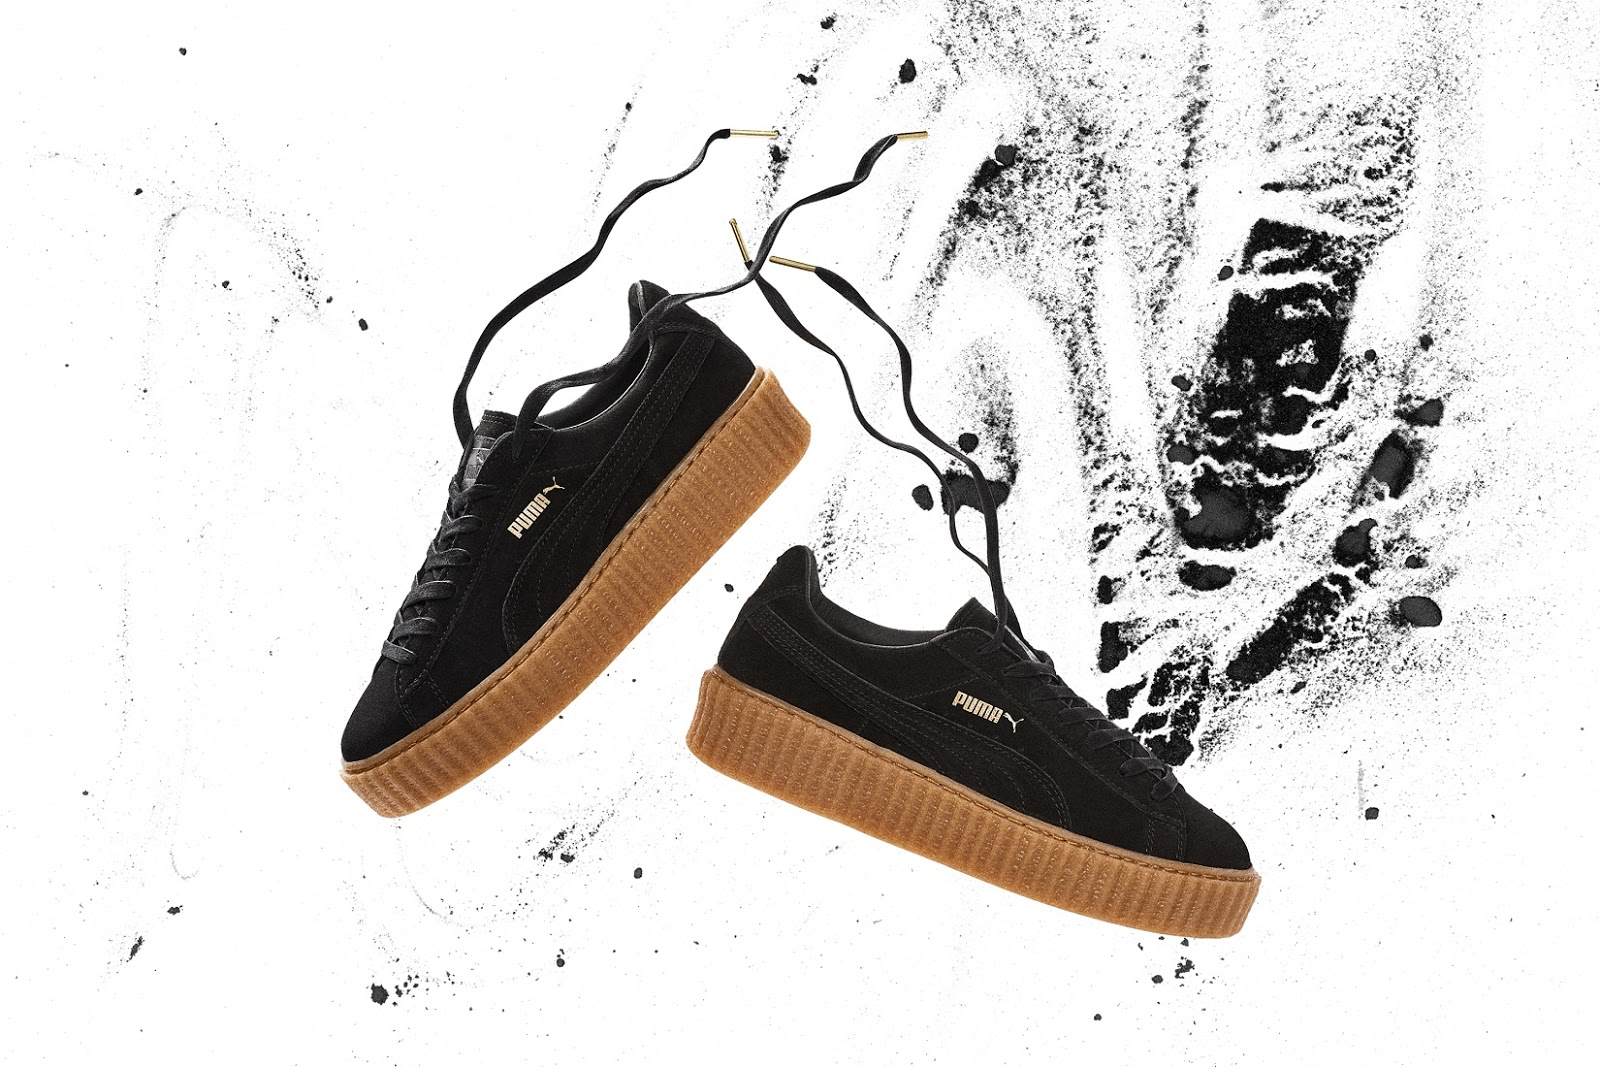 brand new 36634 bfb37 RIHANNA FENTY CREEPERS BY PUMA RESTOCKED IN MALAYSIA ...